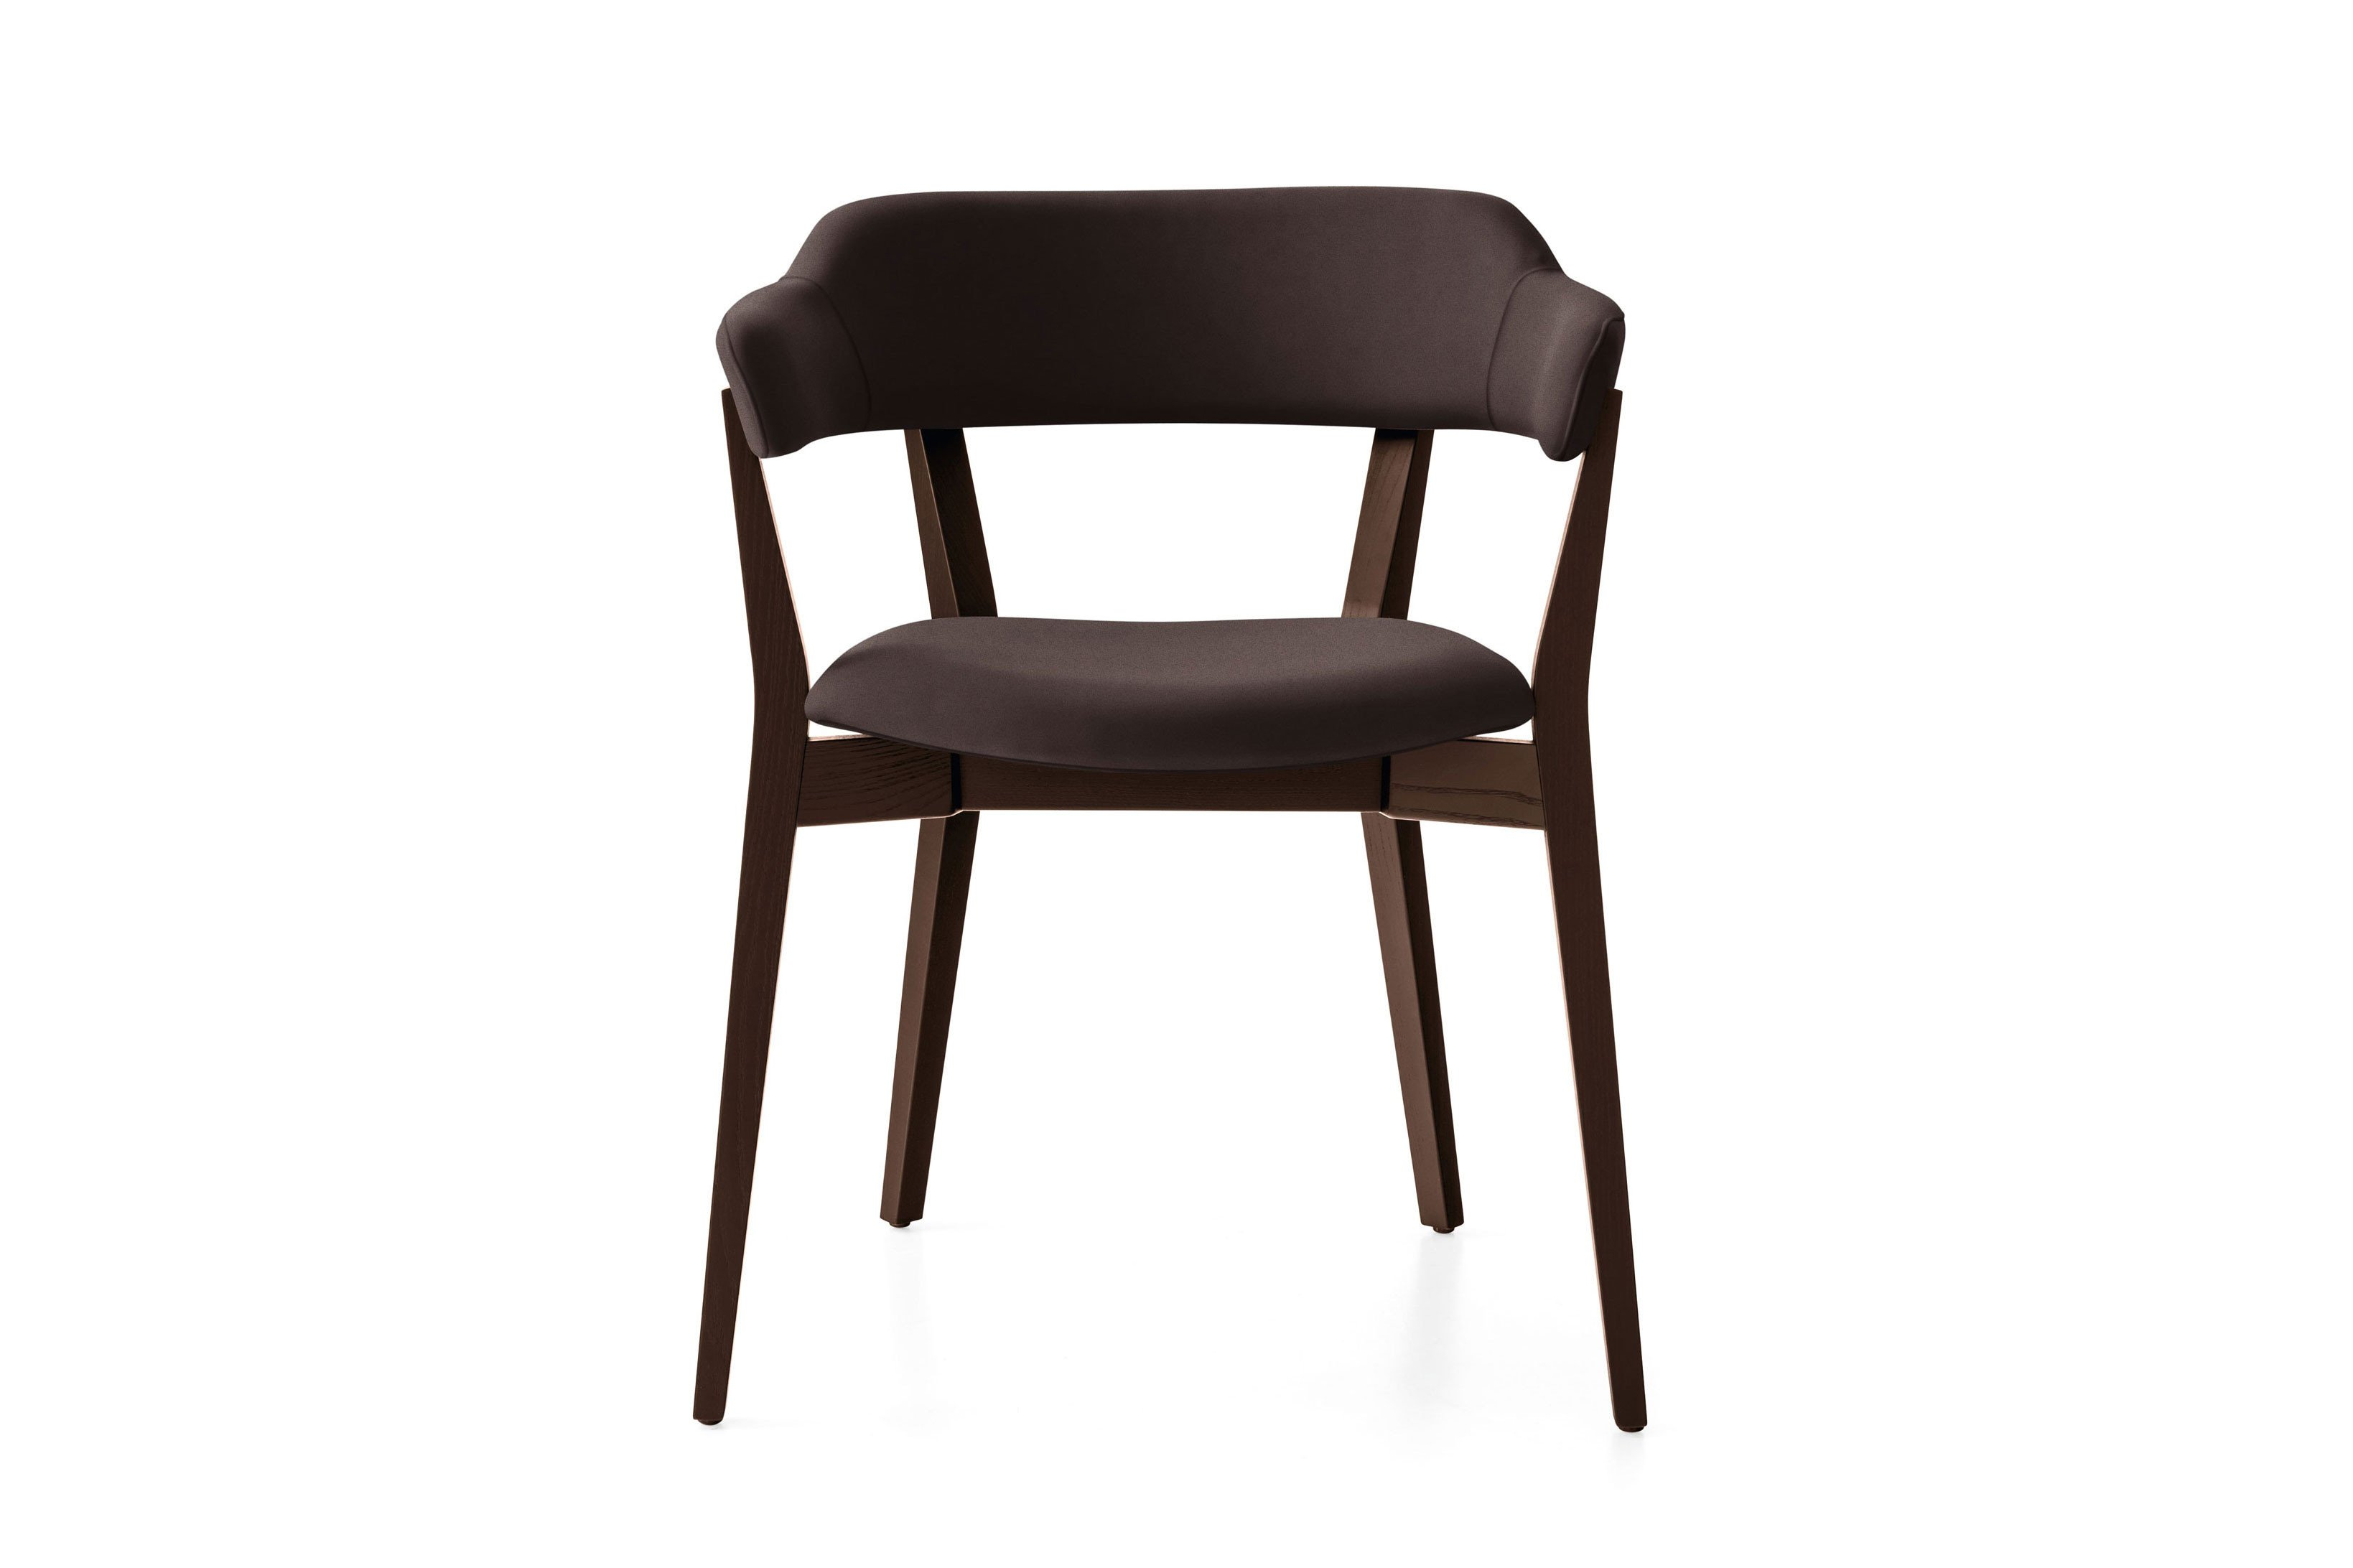 Calligaris Stuhl Connubia By Calligaris Stuhl Hall In Kaffee/ Wenge | Möbel ...